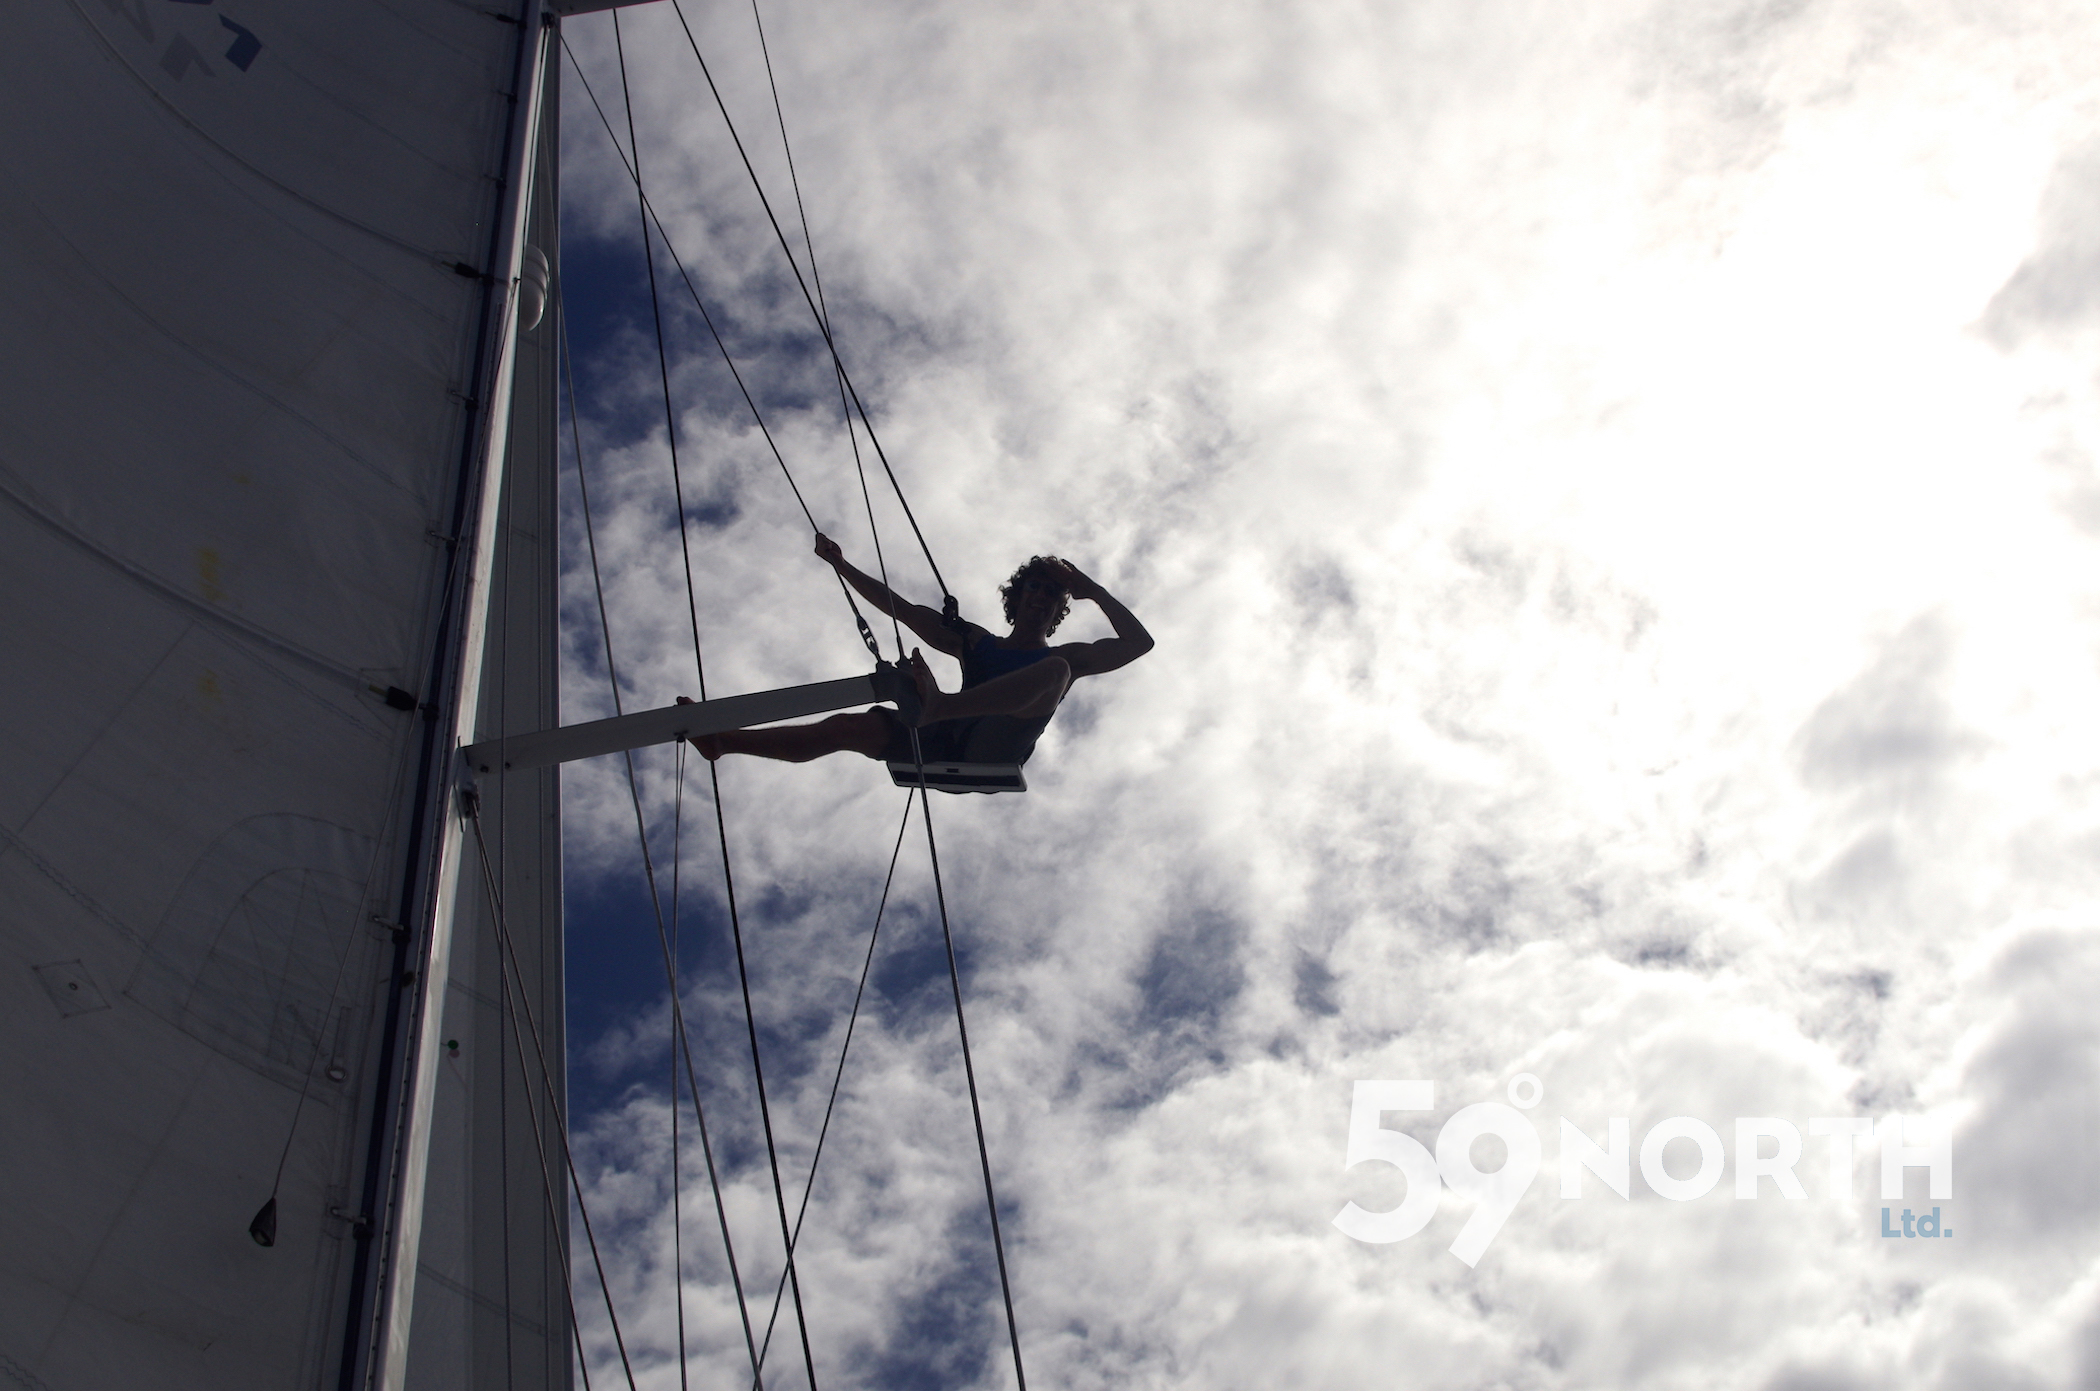 Our friend Clint up the mast! On the way to St. Martin Feb 2016